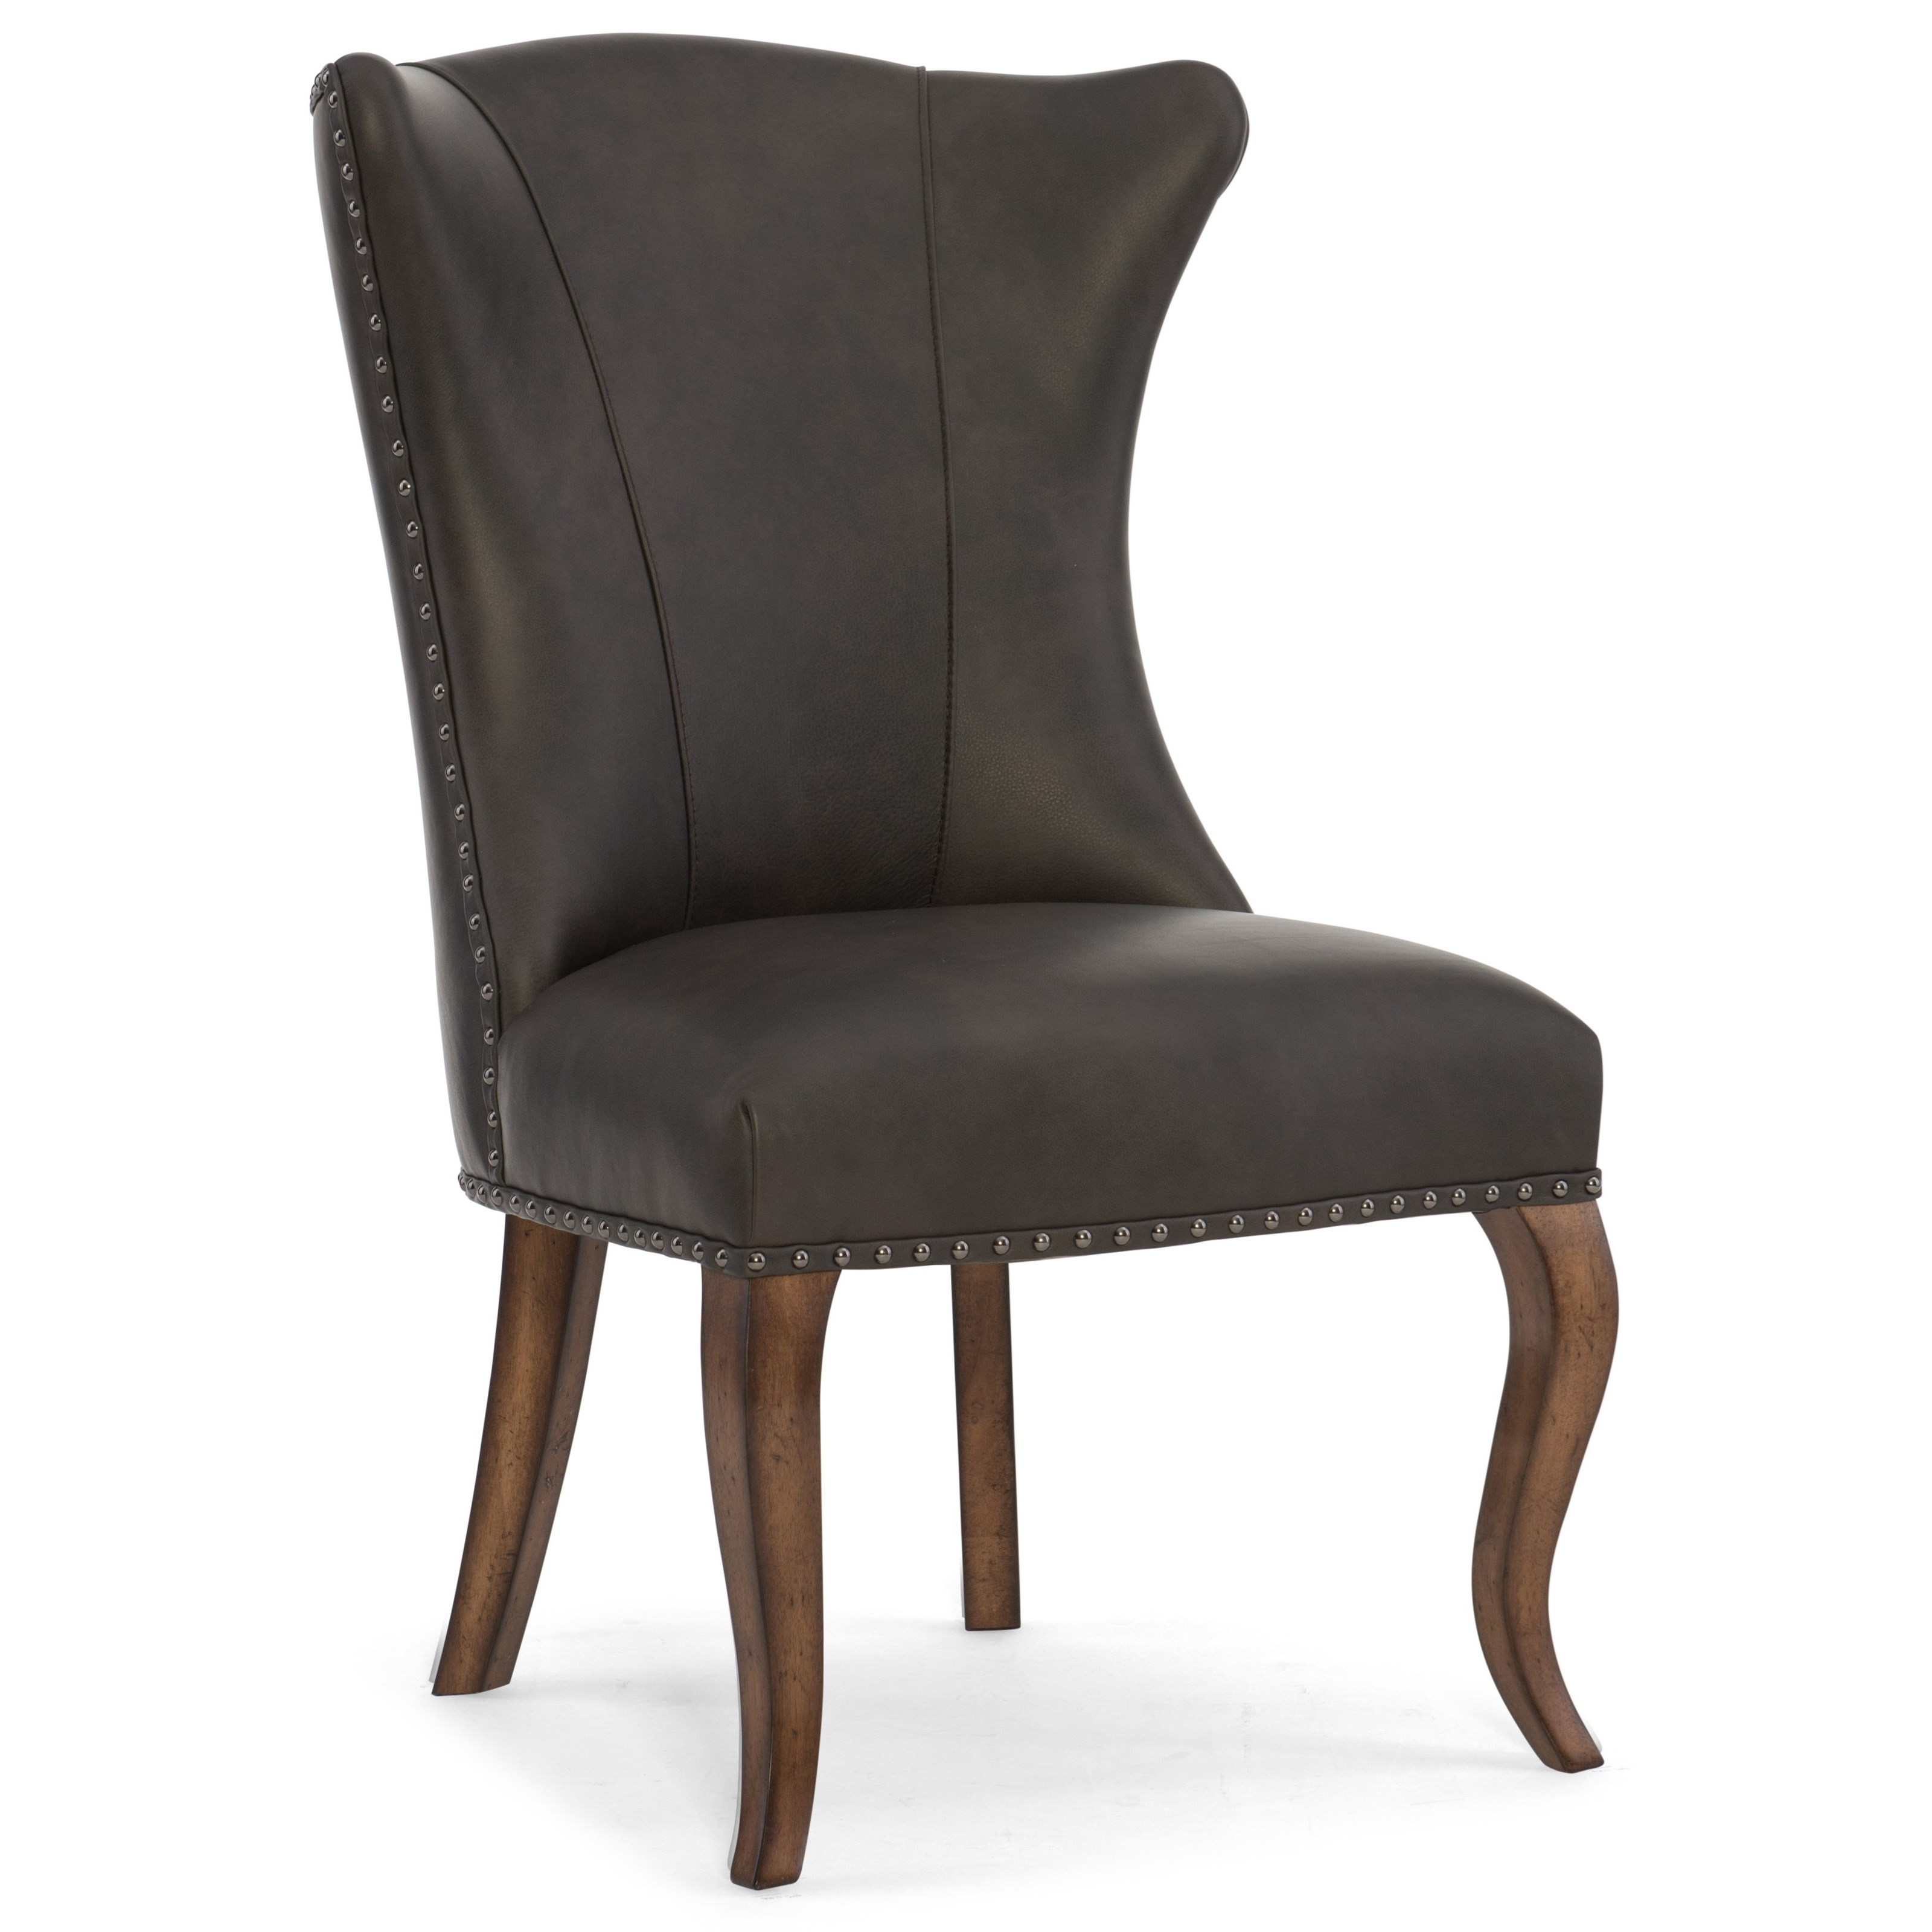 Hooker furniture auberose leather dining chair adcock for Colorful leather dining chairs